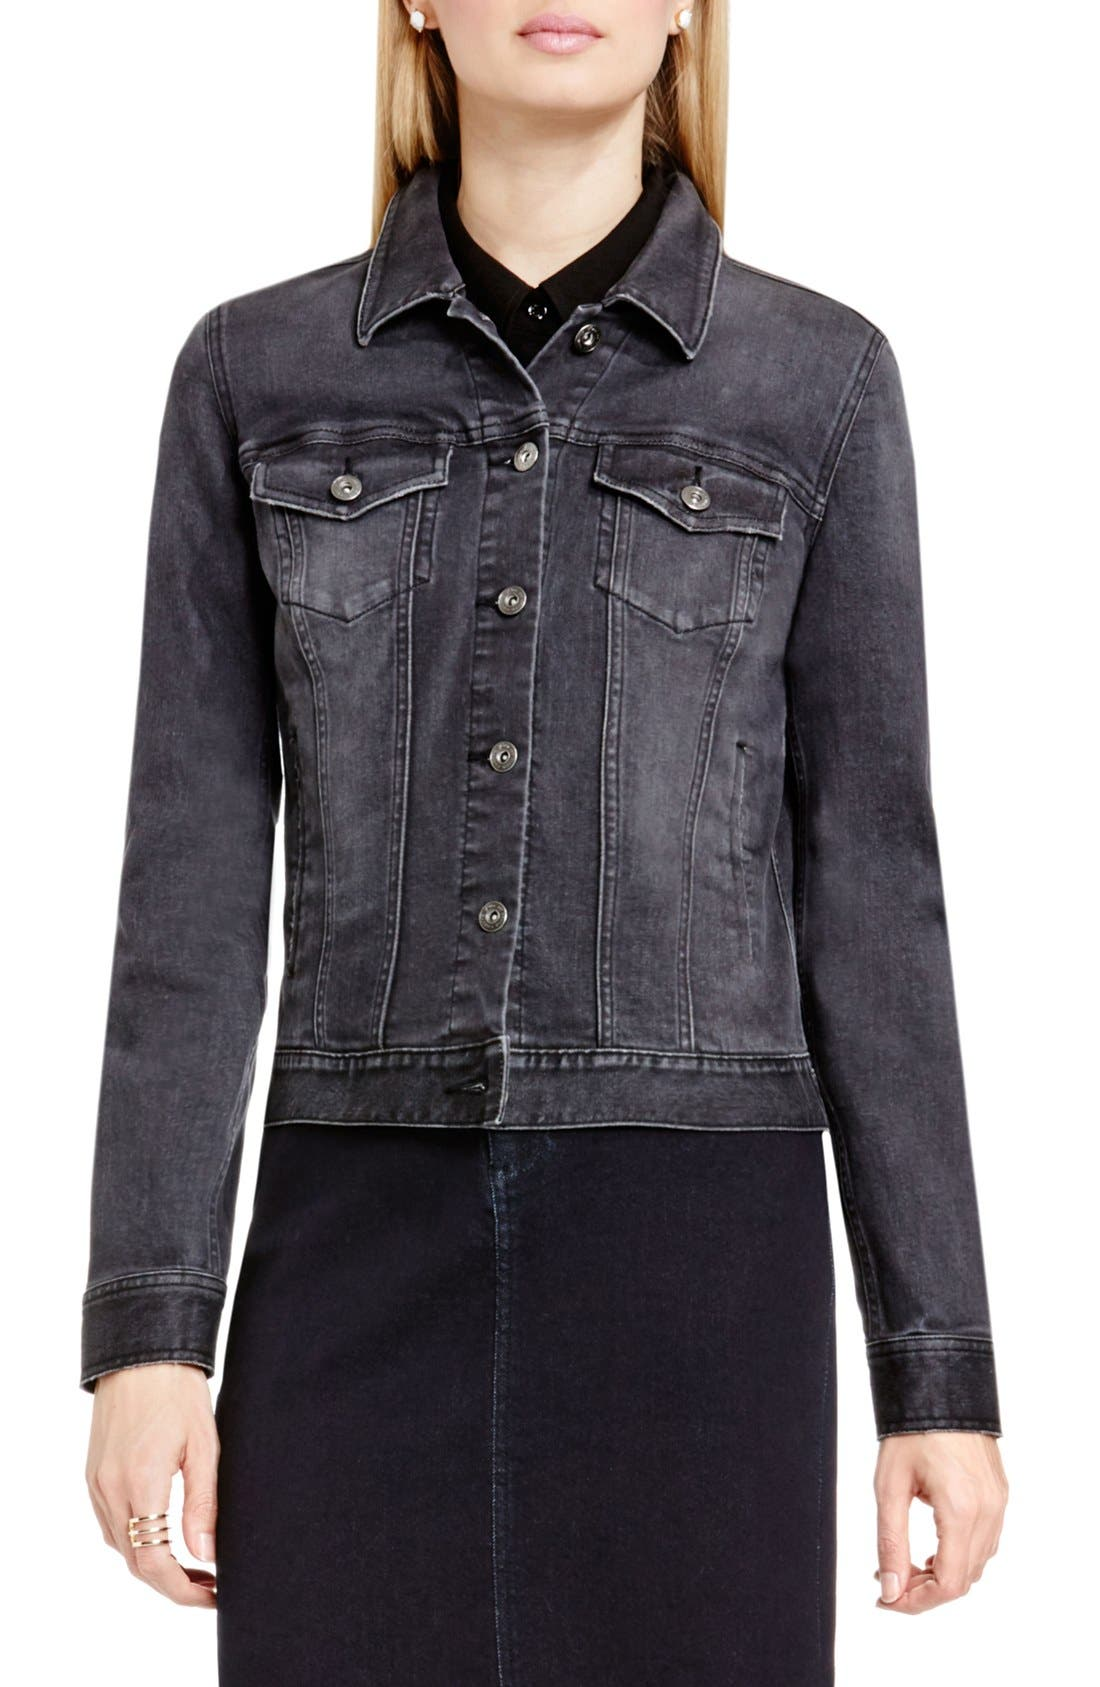 Alternate Image 1 Selected - Two by Vince Camuto Denim Jacket